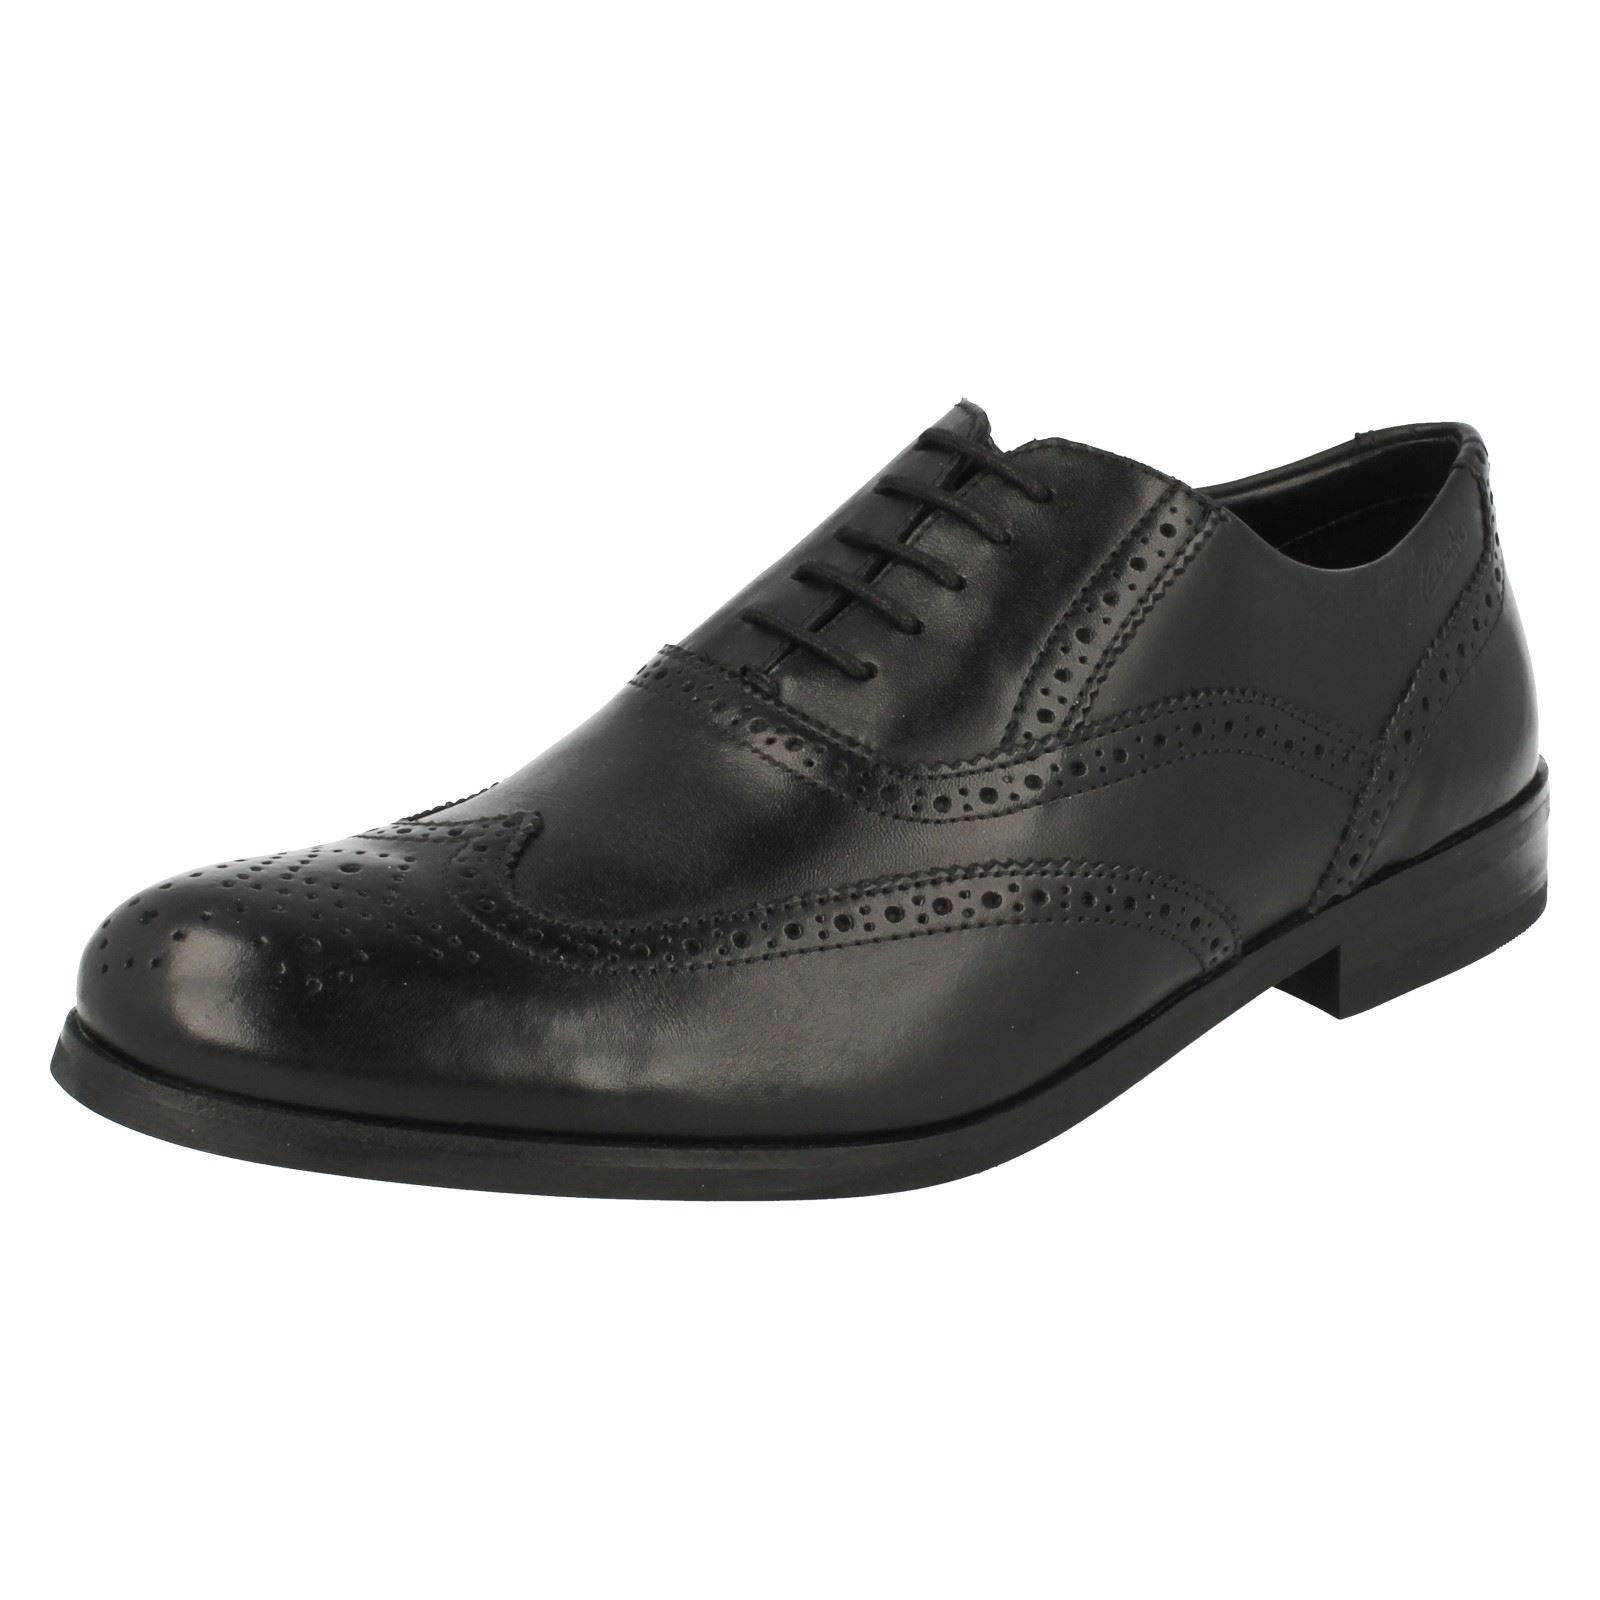 Clarks Mens Brogue Formal Shoes Brint Brogue